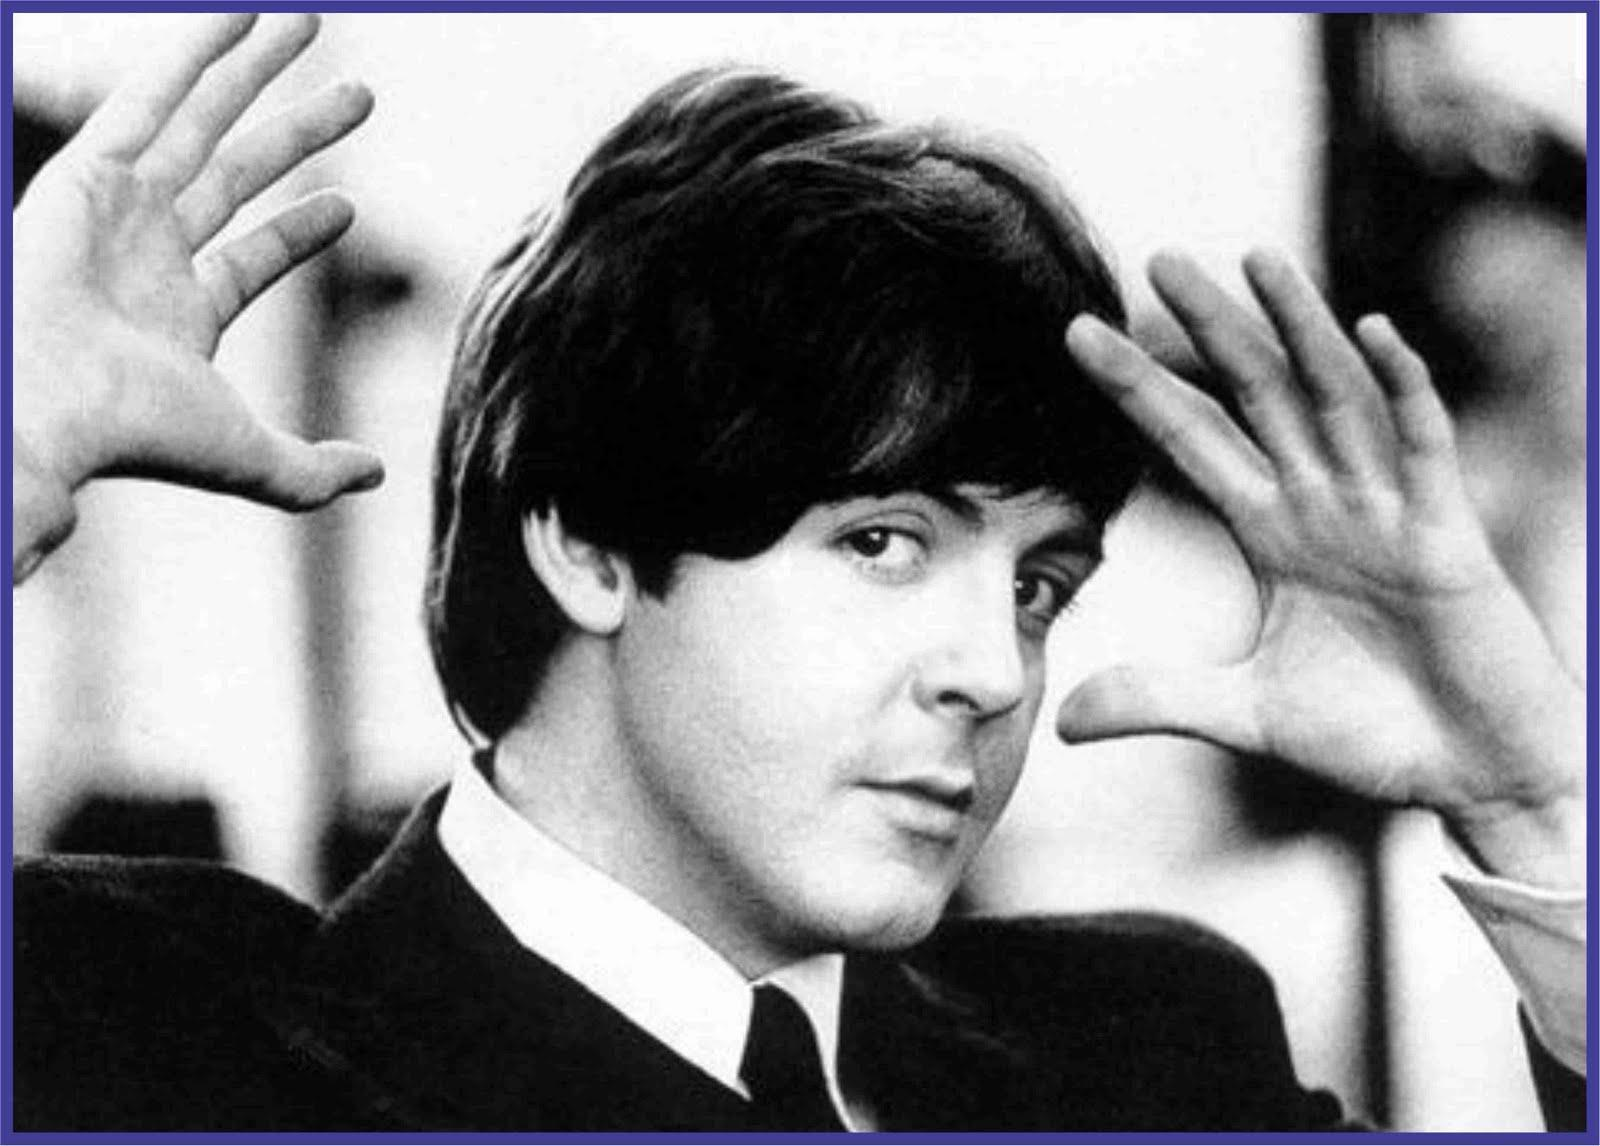 Paul McCartney Young Black white Wallpapers